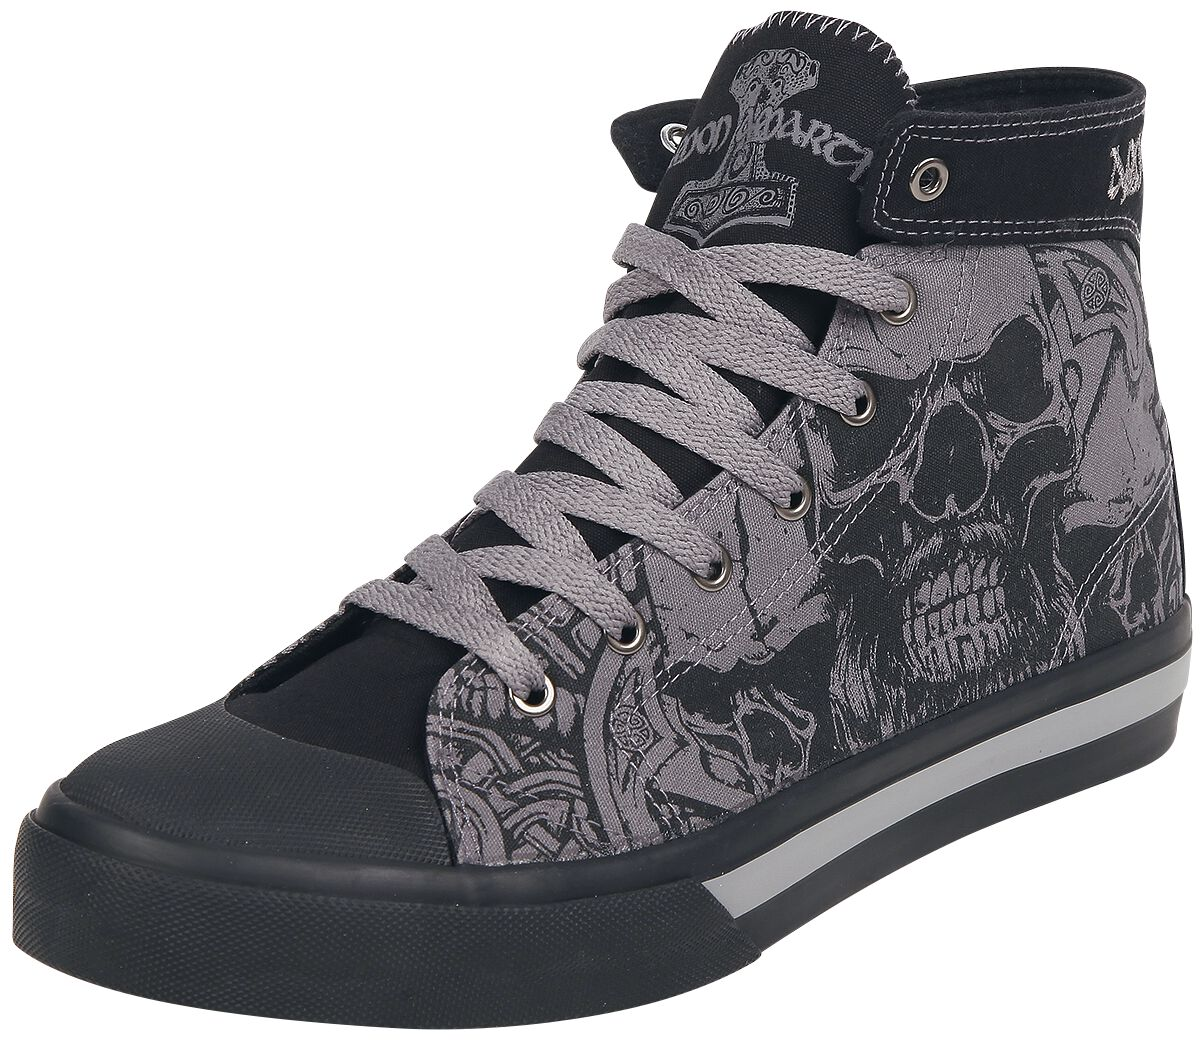 Image of   Amon Amarth EMP Signature Collection Sneakers sort-grå